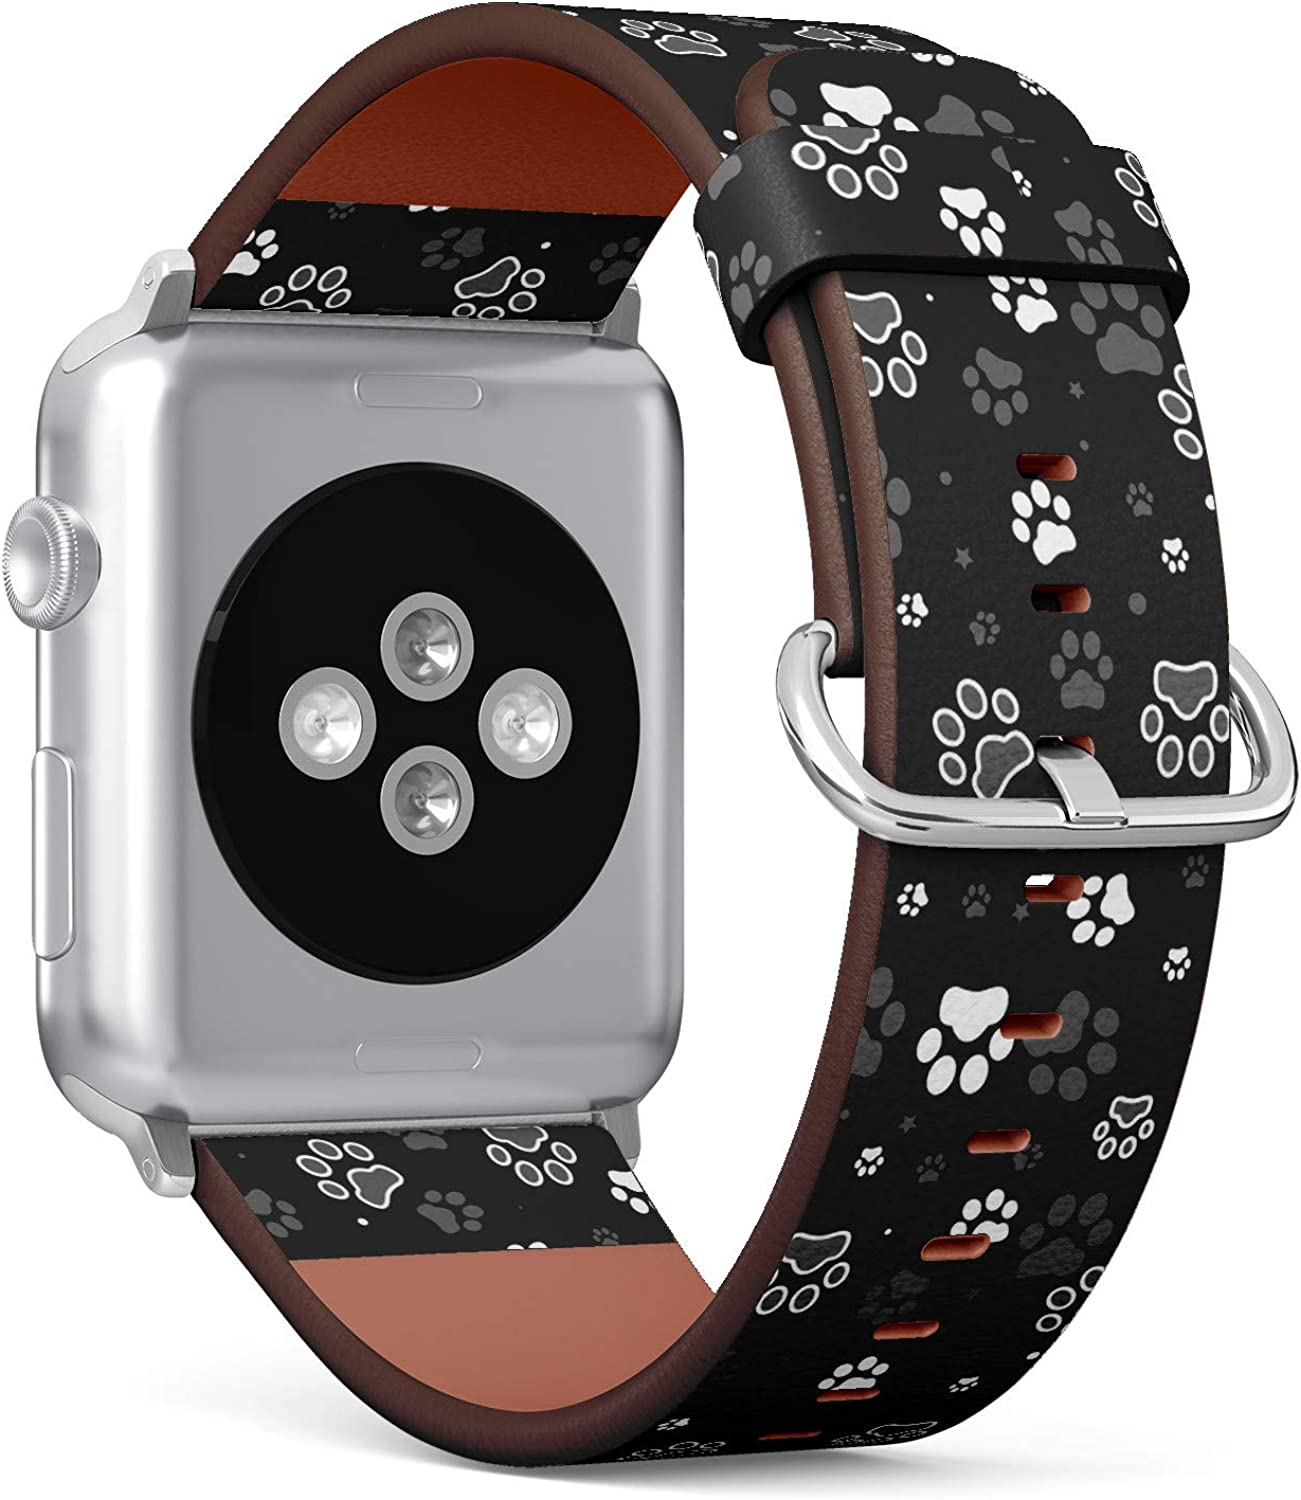 Dog Paws Pattern - Patterned Leather Wristband Strap Compatible with Apple Watch Series 4/3/2/1 42/44mm